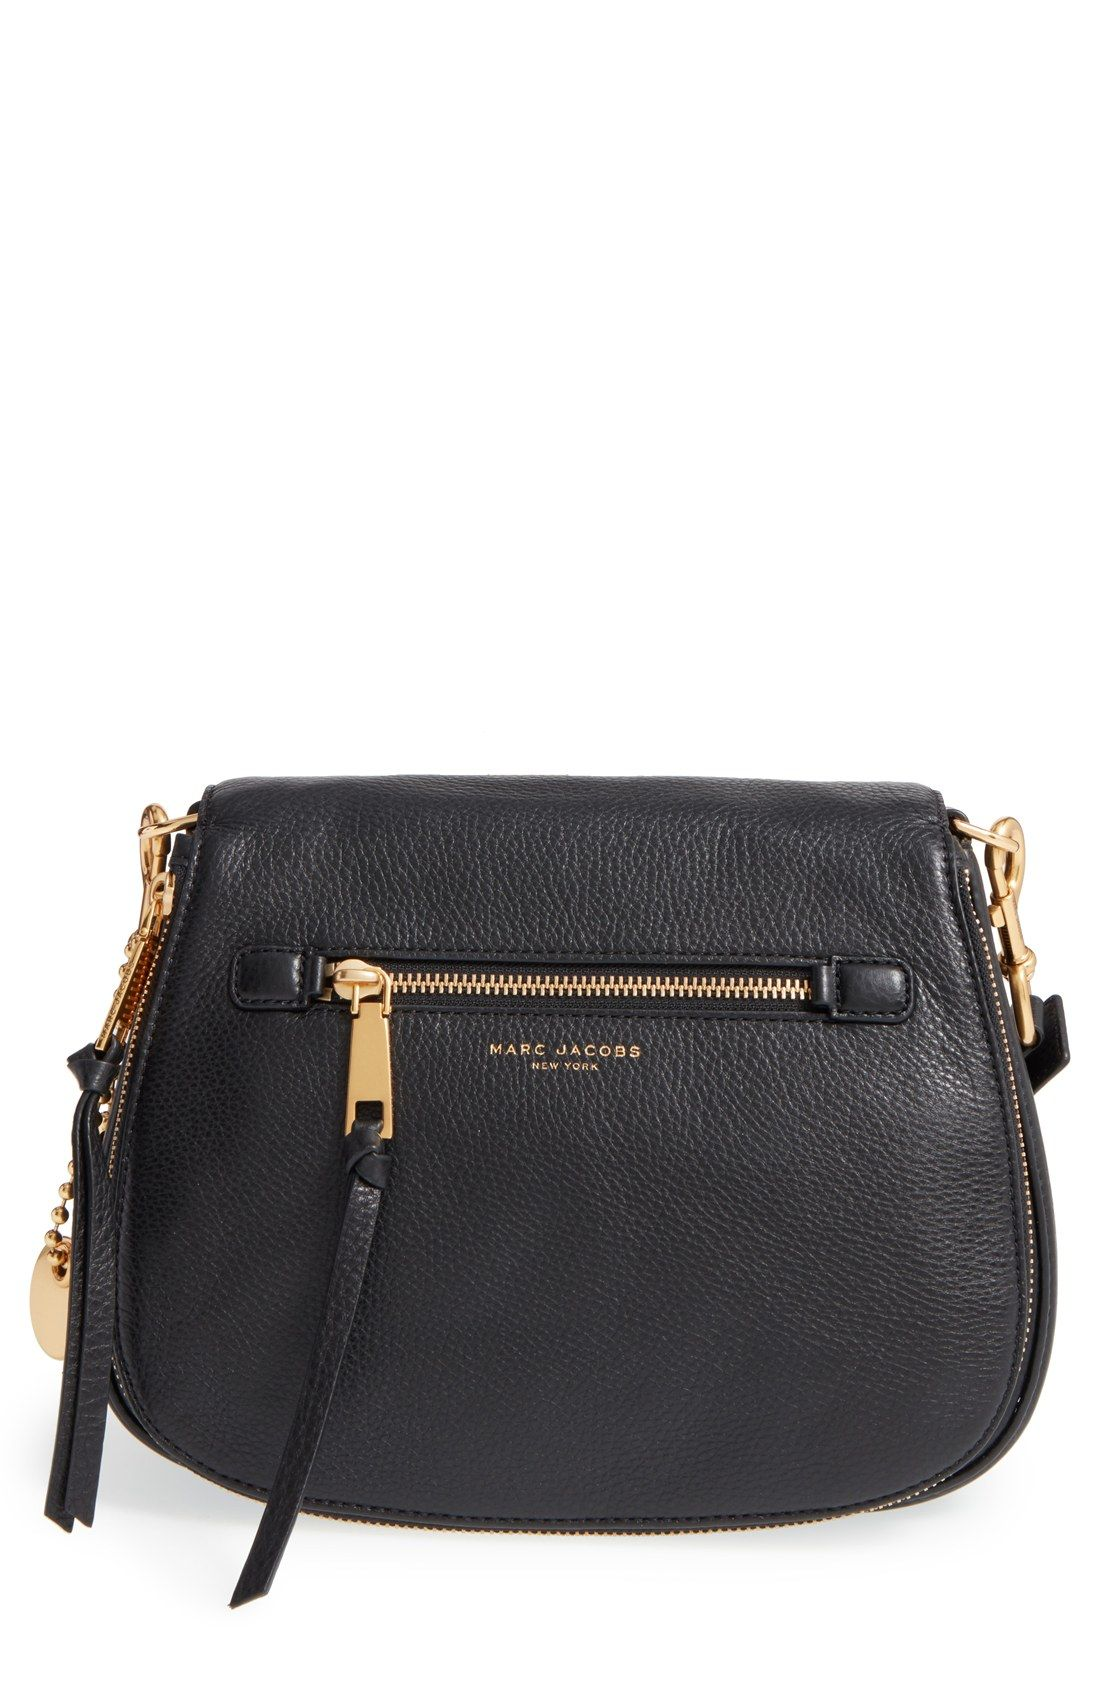 f9895a43849a An everyday must-have! This crossbody bag from Marc Jacbos has a saddle-bag  silhouette and gilded hardware to polish the look.